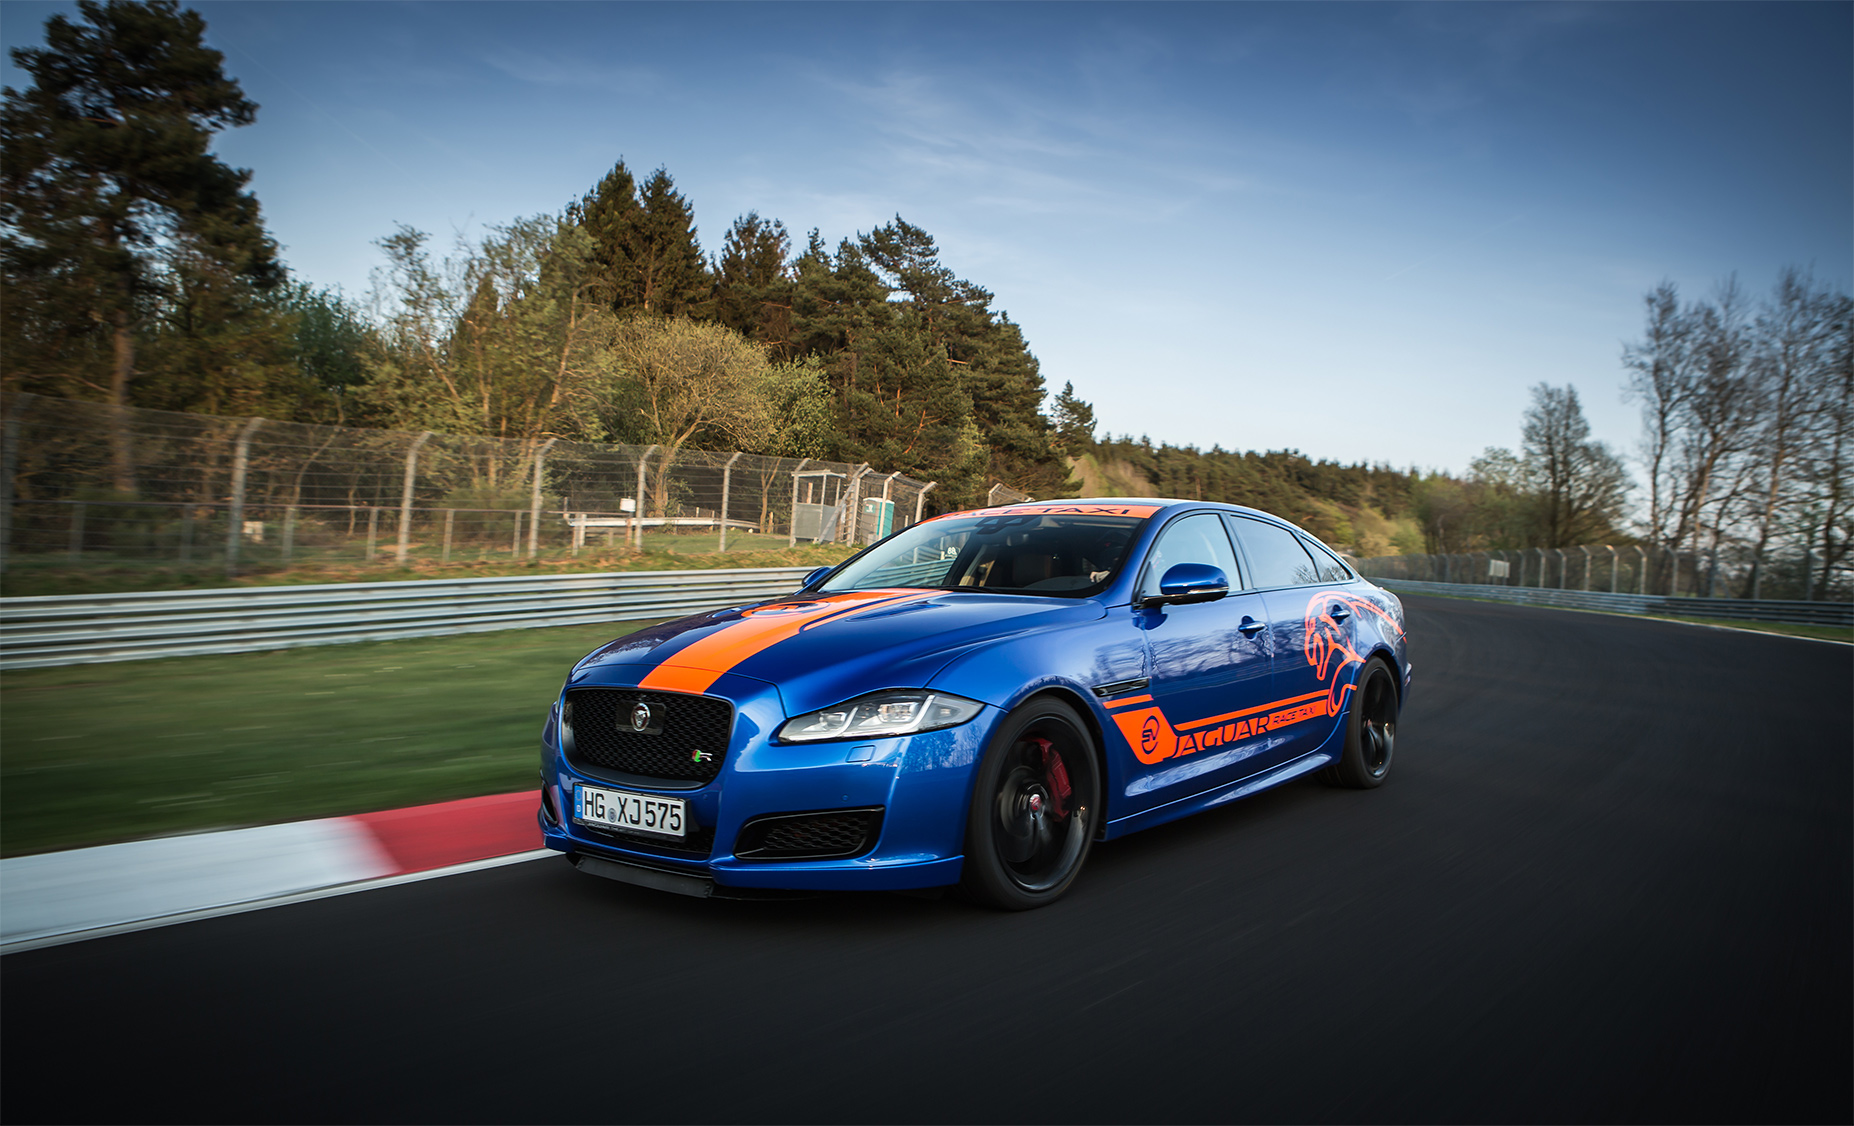 TrackWorthy - Jaguar F-TYPE SVR and XJR575 Nurburgring Race Taxis (5)